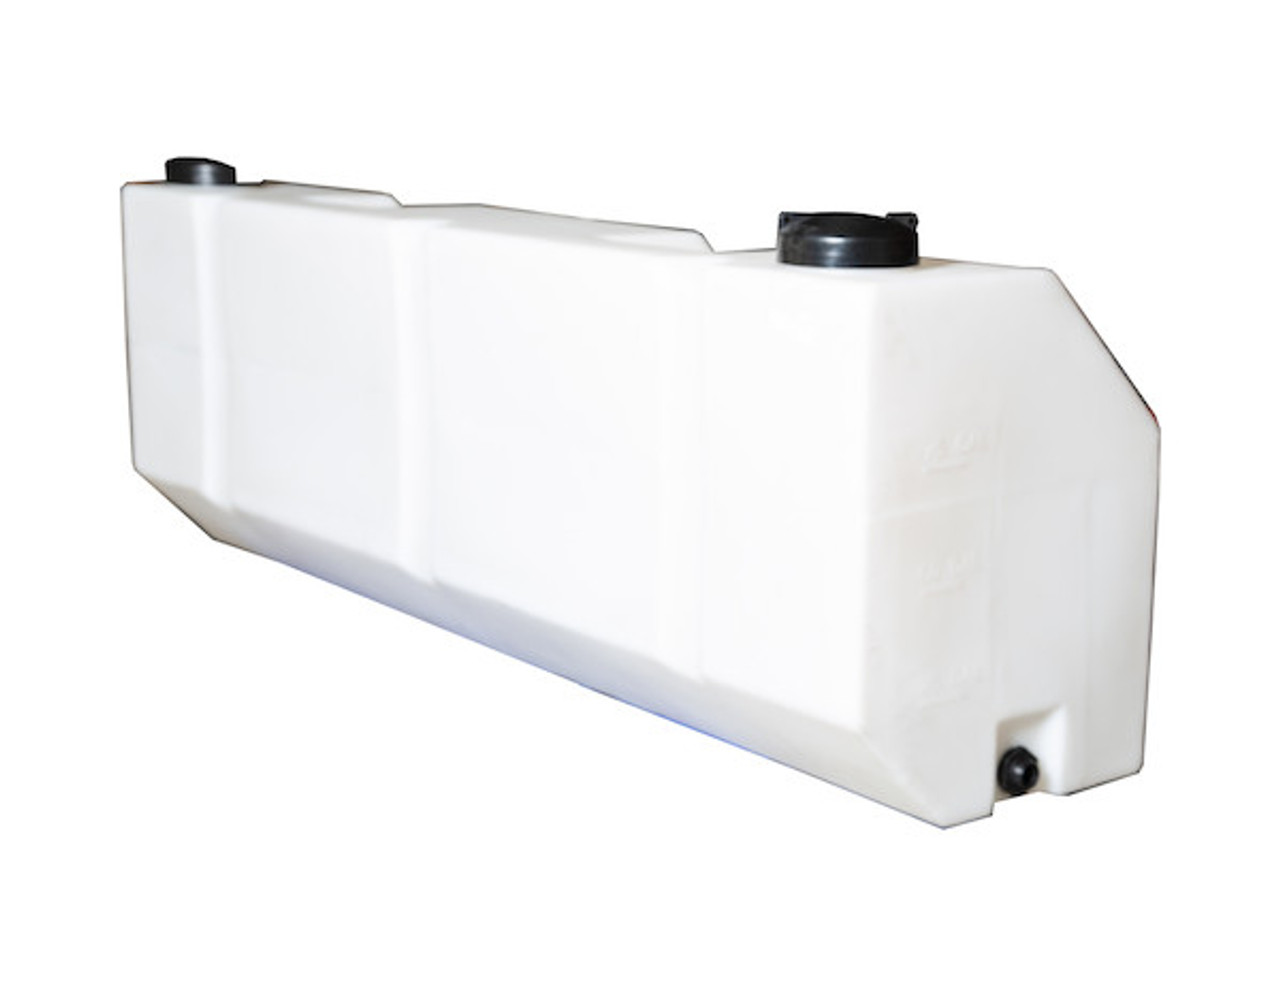 LS4 Buyers SaltDogg 12 VDC Pre-Wet Kit With One 105-Gallon Poly V-Box Mount Reservoir Picture # 3